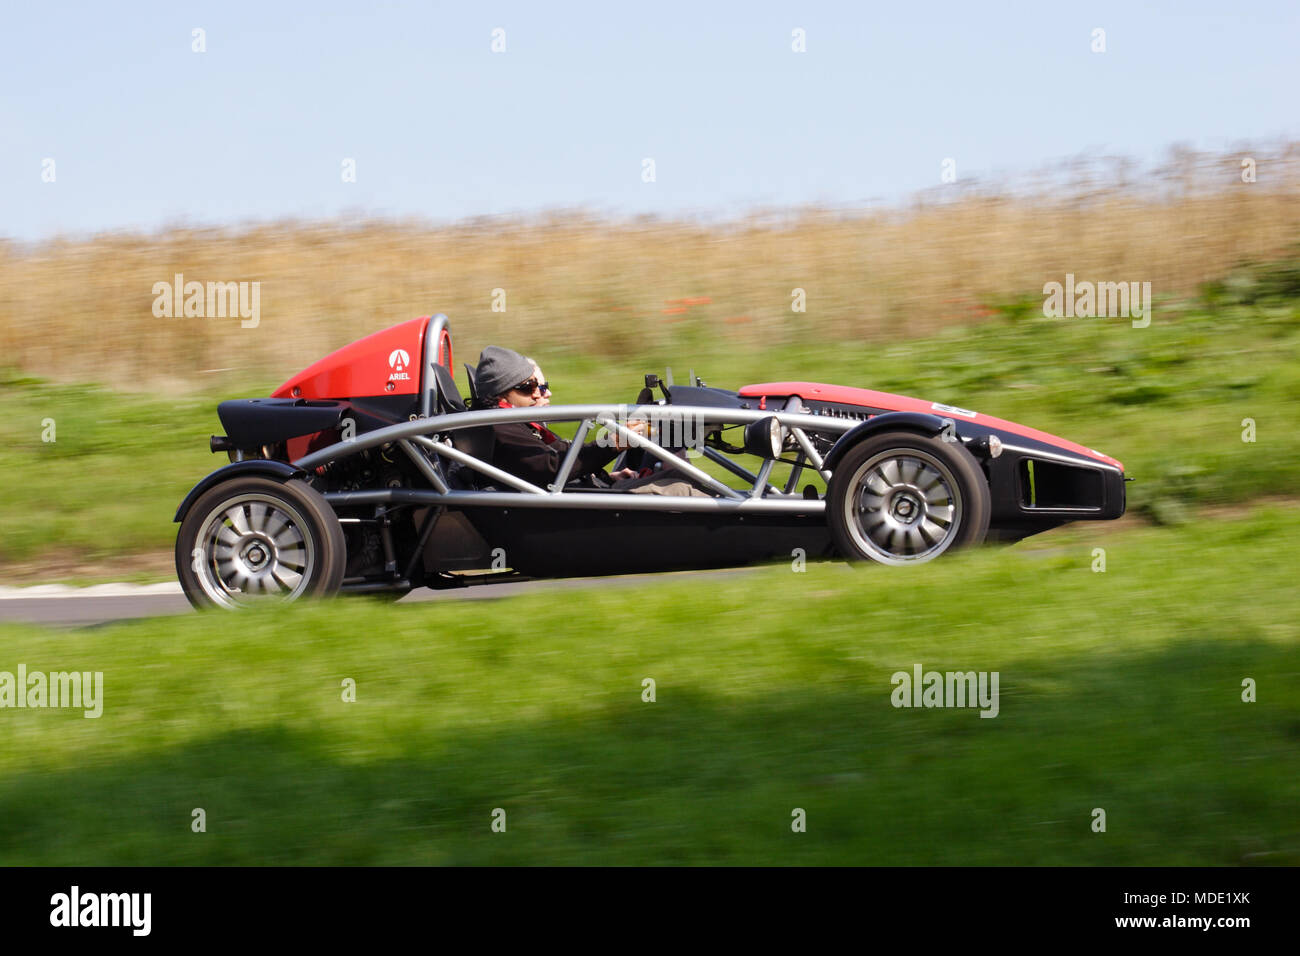 Profile (side view) Ariel Atom 2 seat two-seater lightweight sports car track car driving fast. Transparent see-through visible car exoskeleton. - Stock Image